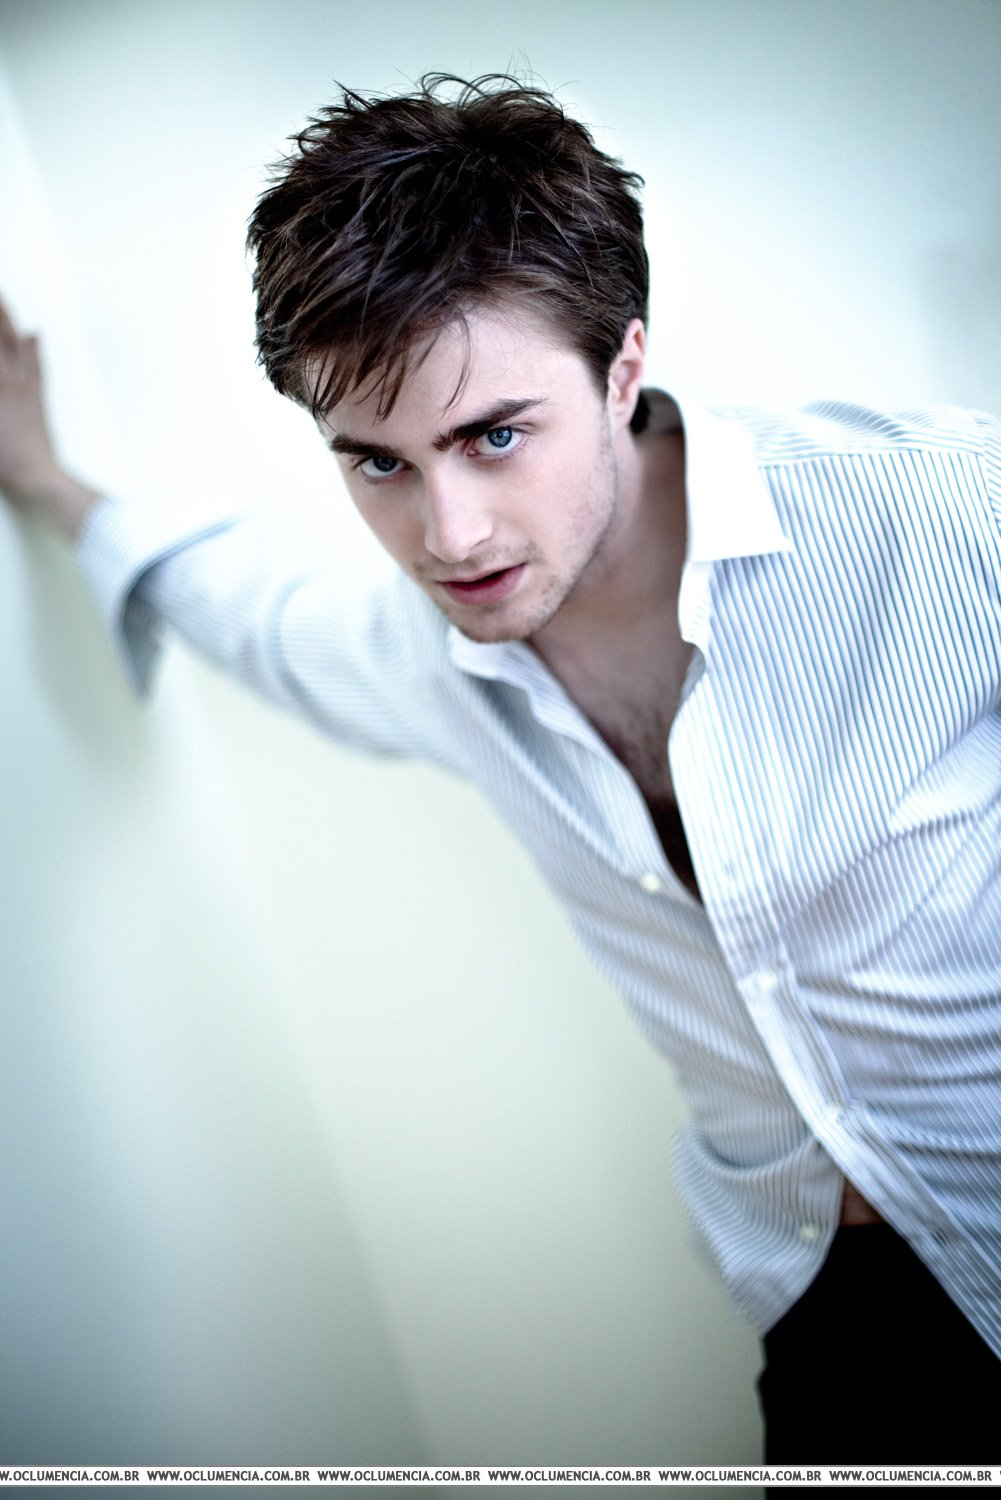 Daniel Radcliffe | Photos, Facebook, Twitter & Linkedin for Free at Social ...